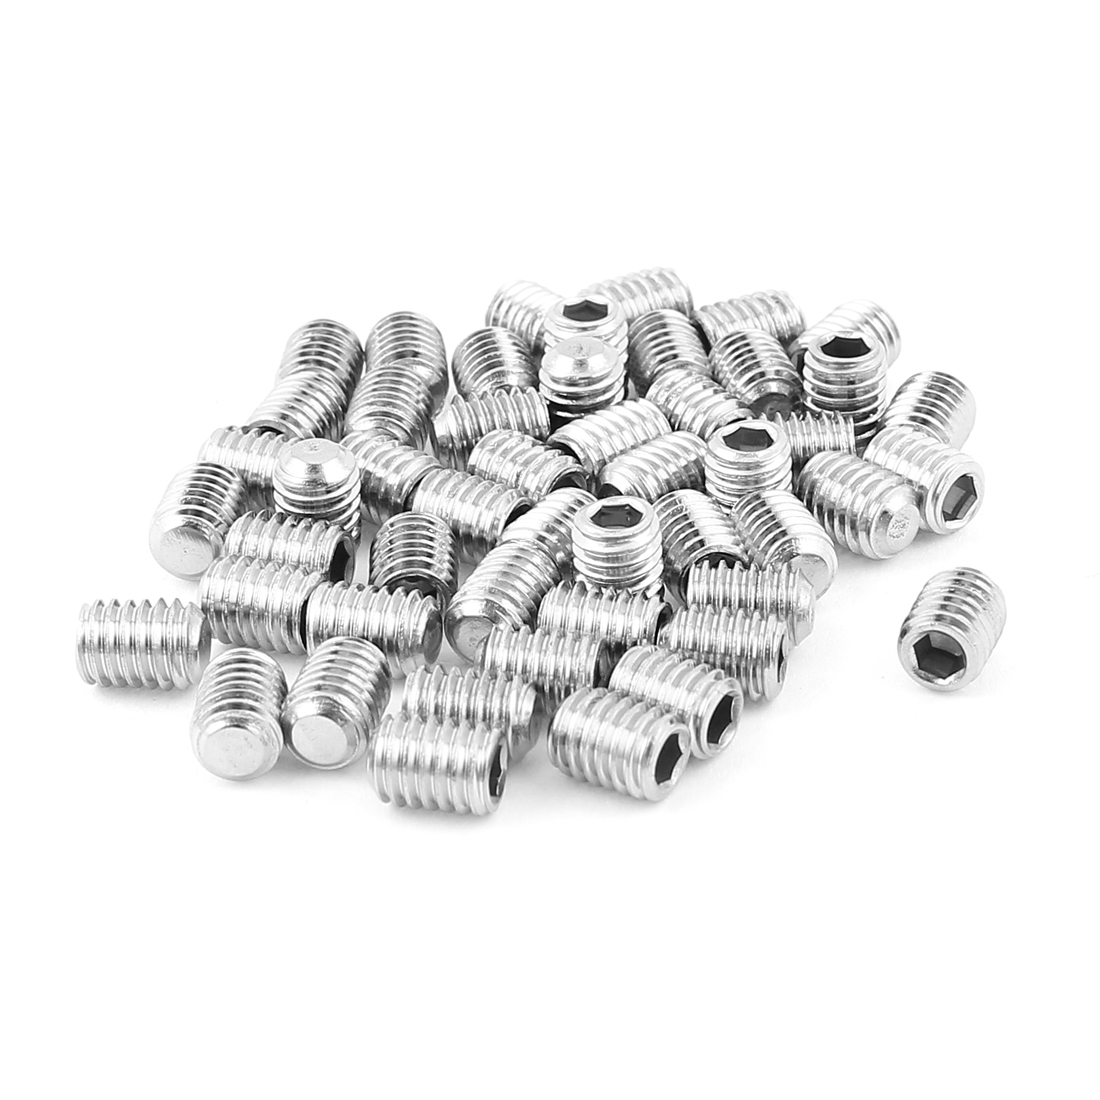 6mm x 8mm Stainless Steel Hexagon Socket Head Set Cup Point Grub Screws 50pcs